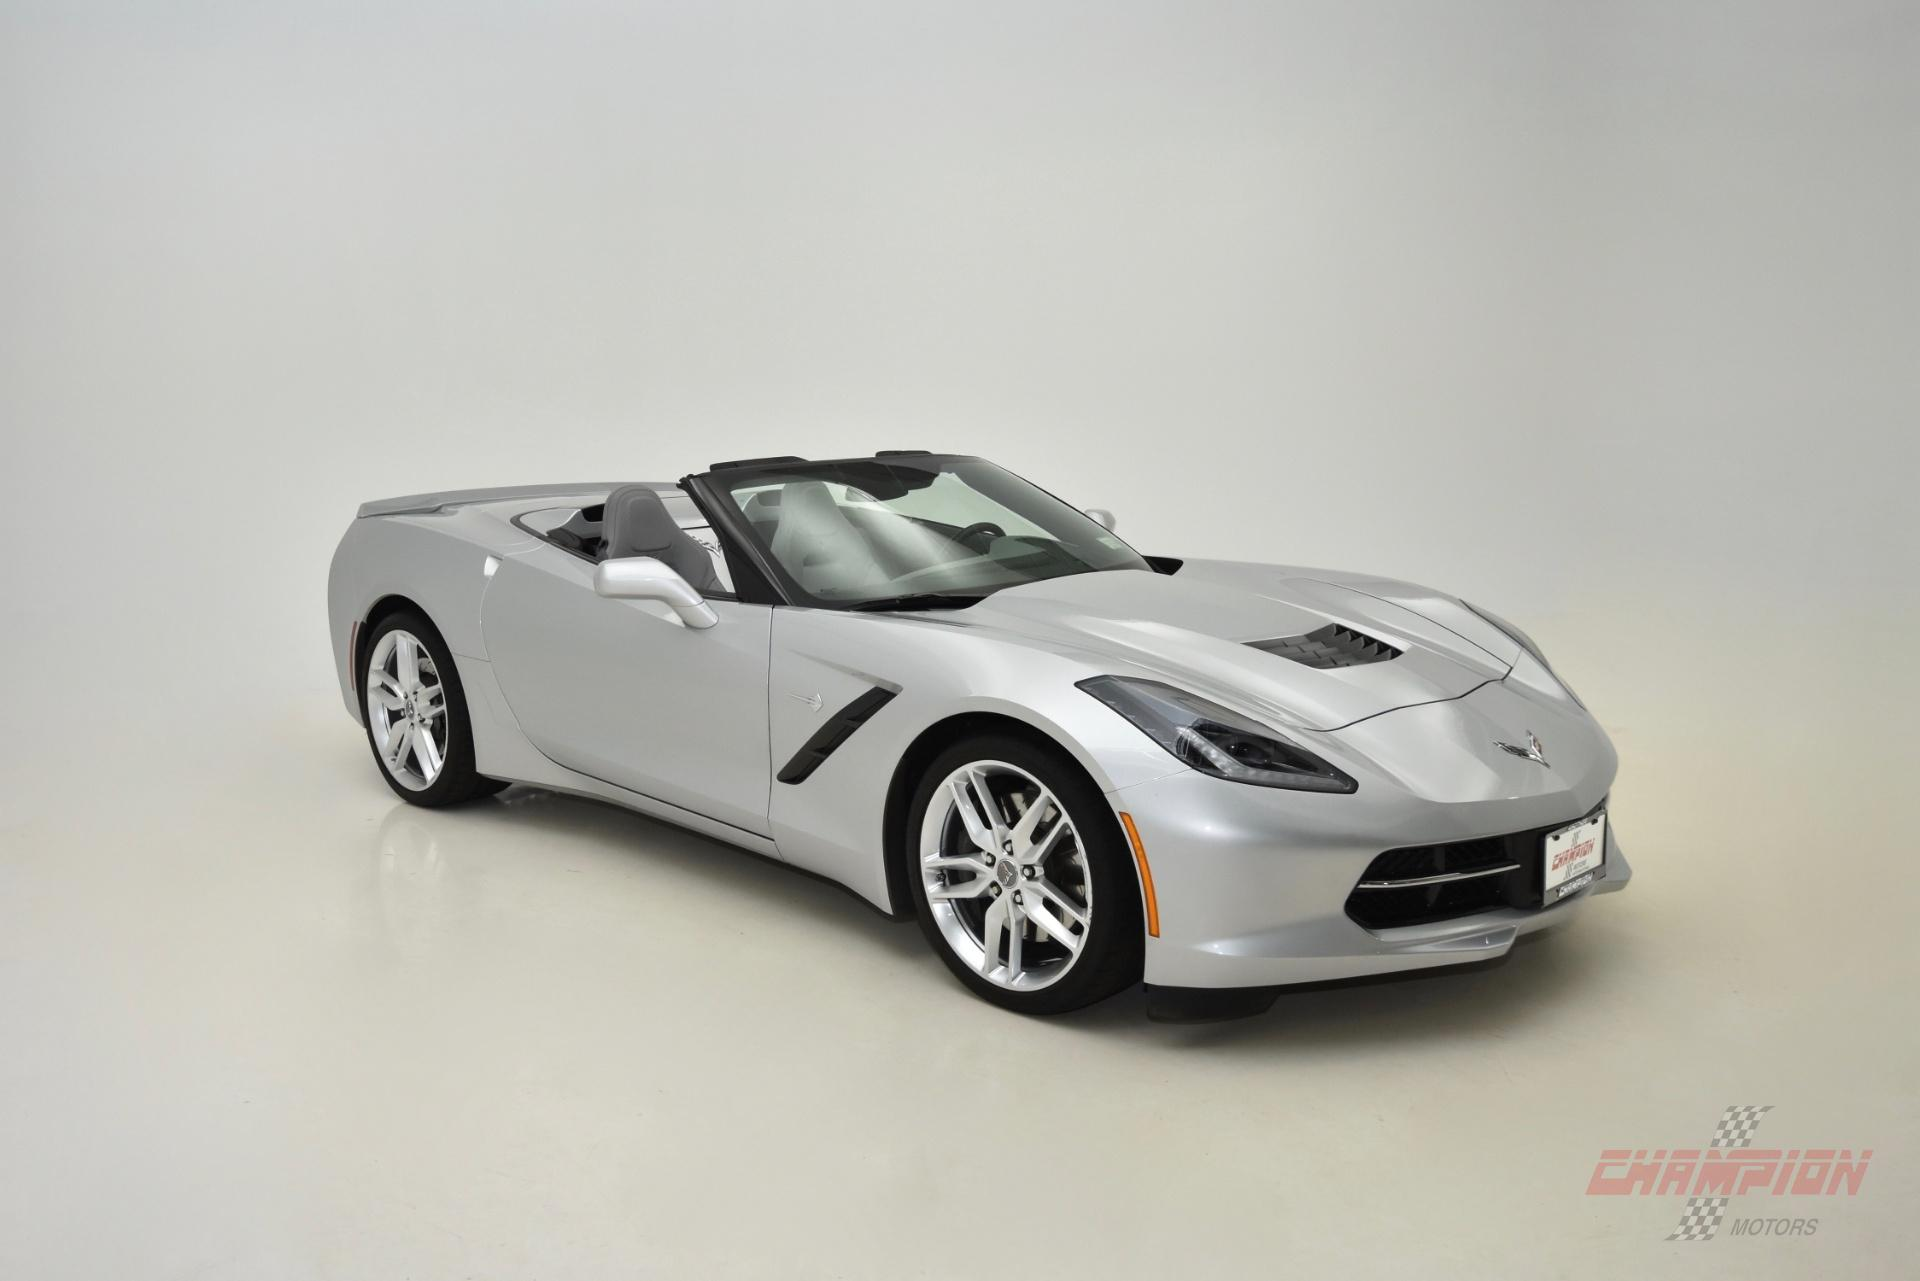 2015 chevrolet corvette stingray z51 exotic classic car. Black Bedroom Furniture Sets. Home Design Ideas